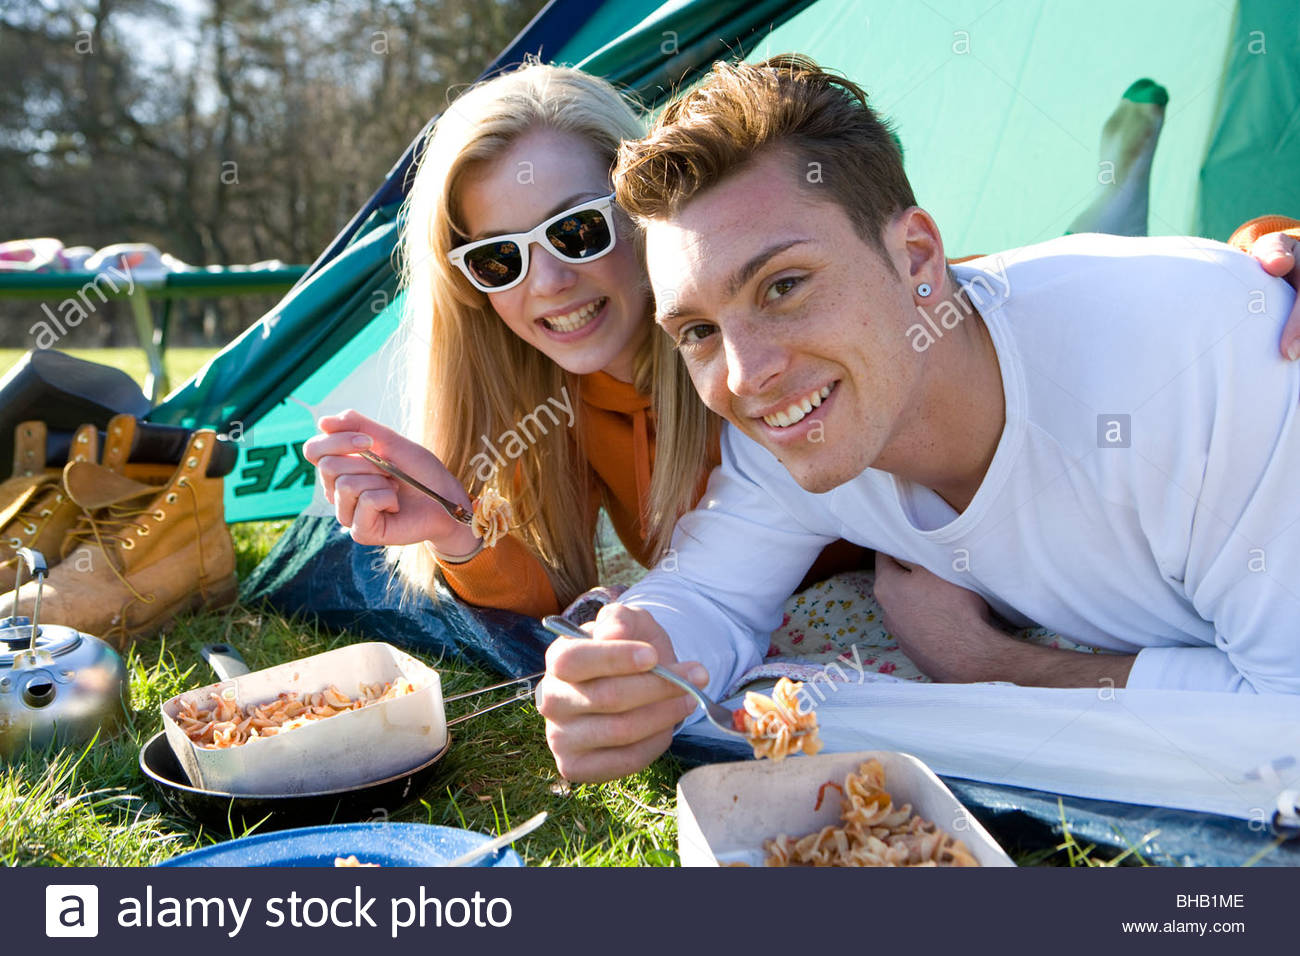 Couple eating in doorway of tent  sc 1 st  Alamy & Couple eating in doorway of tent Stock Photo Royalty Free Image ...